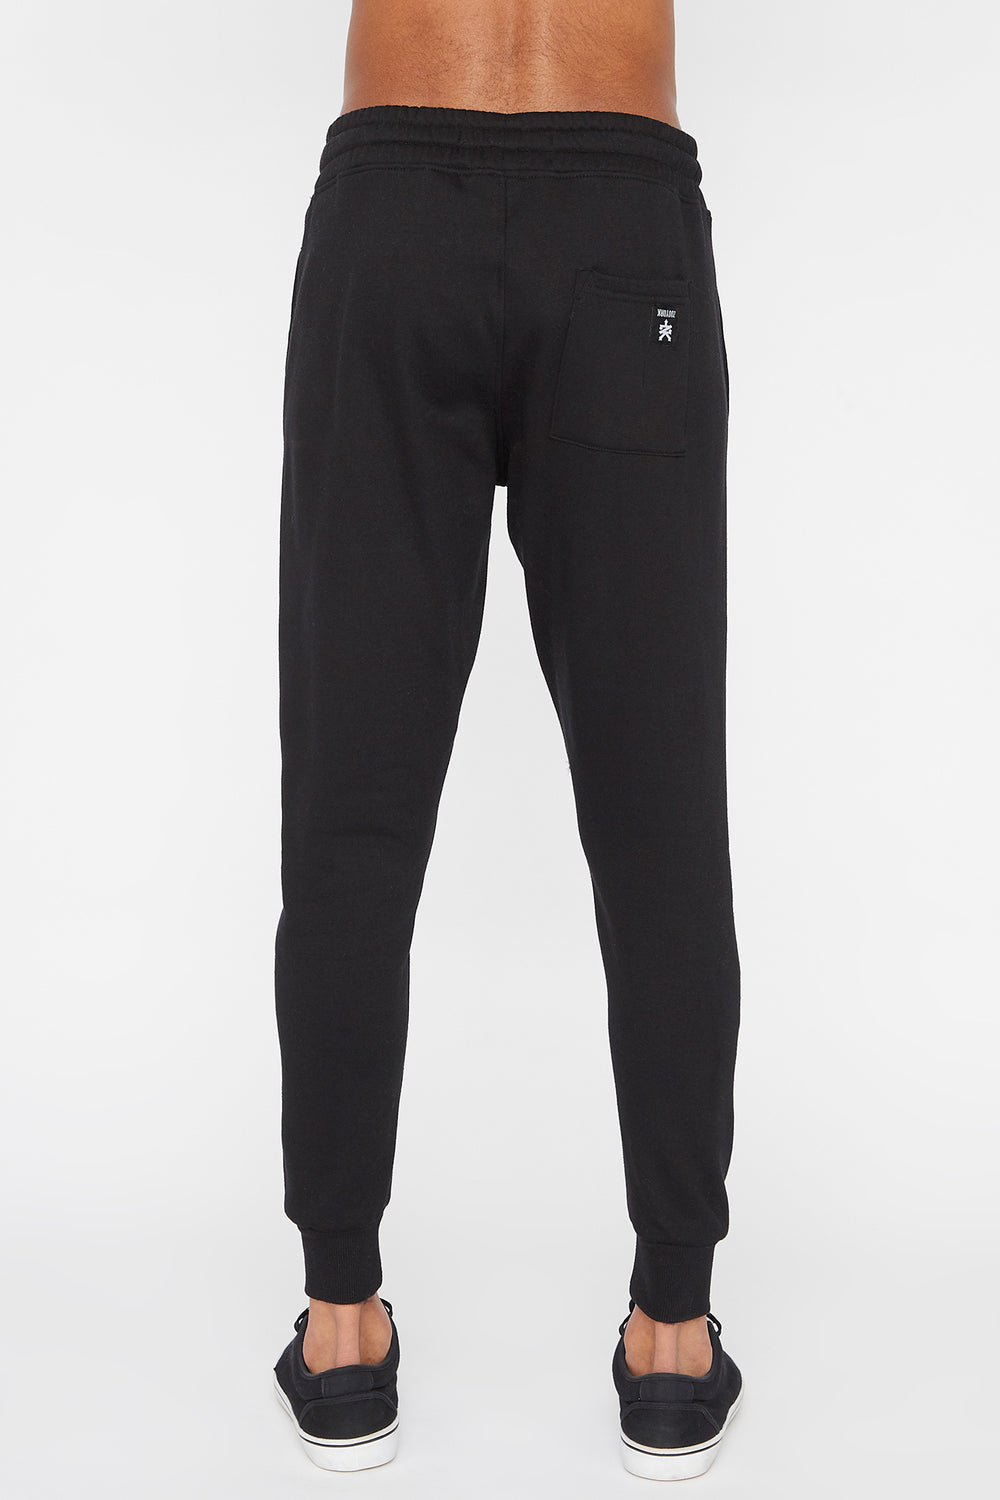 Zoo York Mens Embroidered Logo Jogger Black